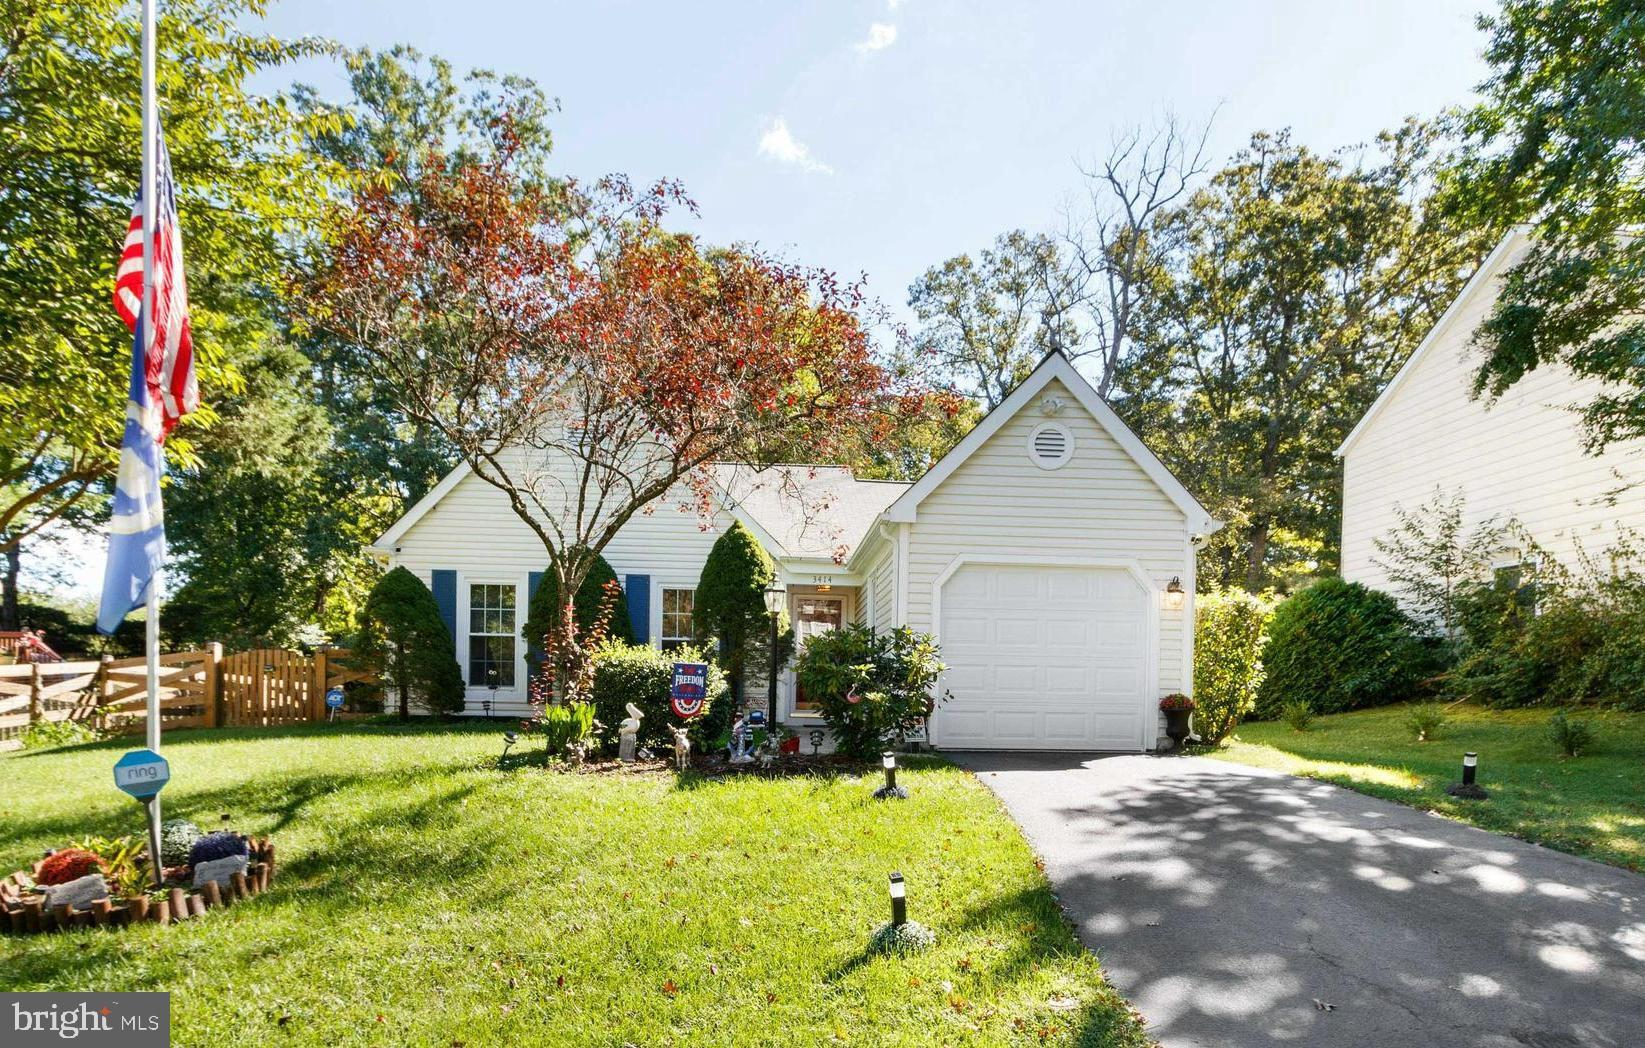 Take one step in the front door and immediately feel at home. This bright and open three-bedroom two